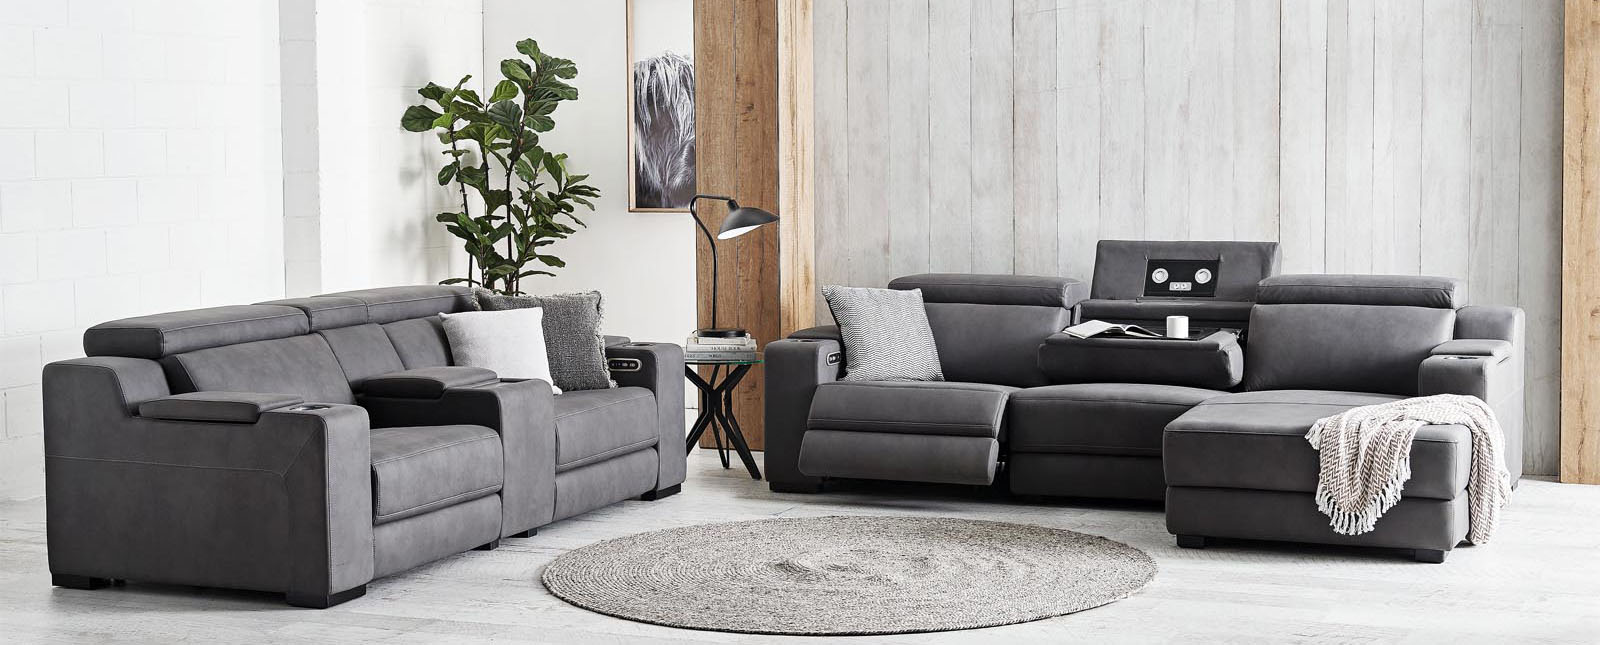 Functional Furniture available from Harvey Norman.